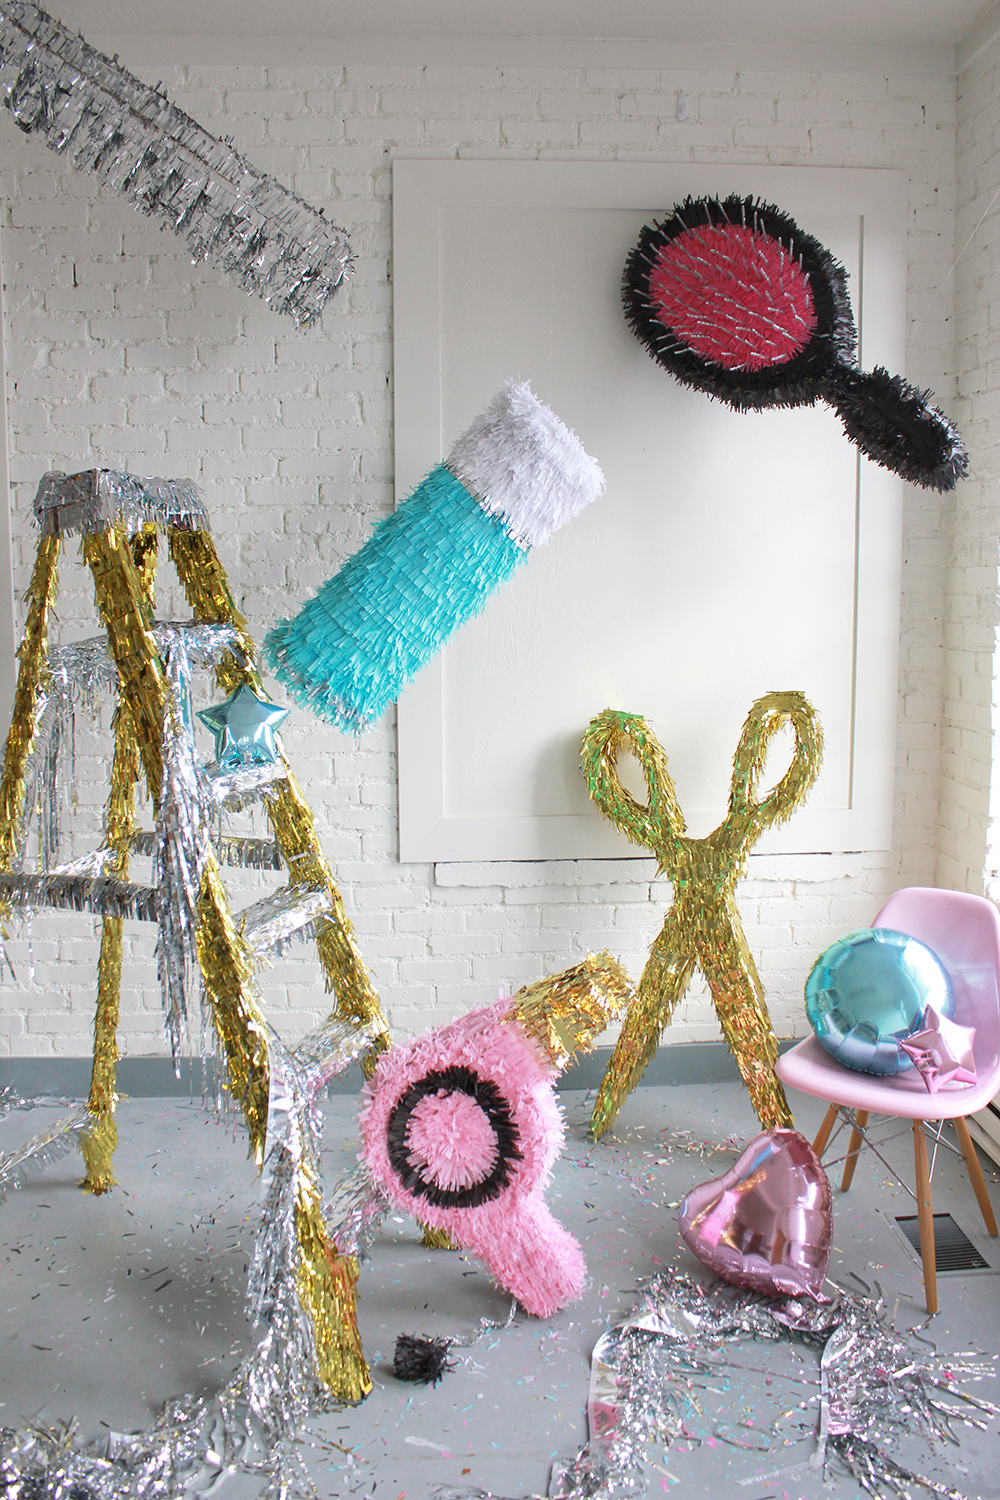 Throw a hair party with some festive pinatas!